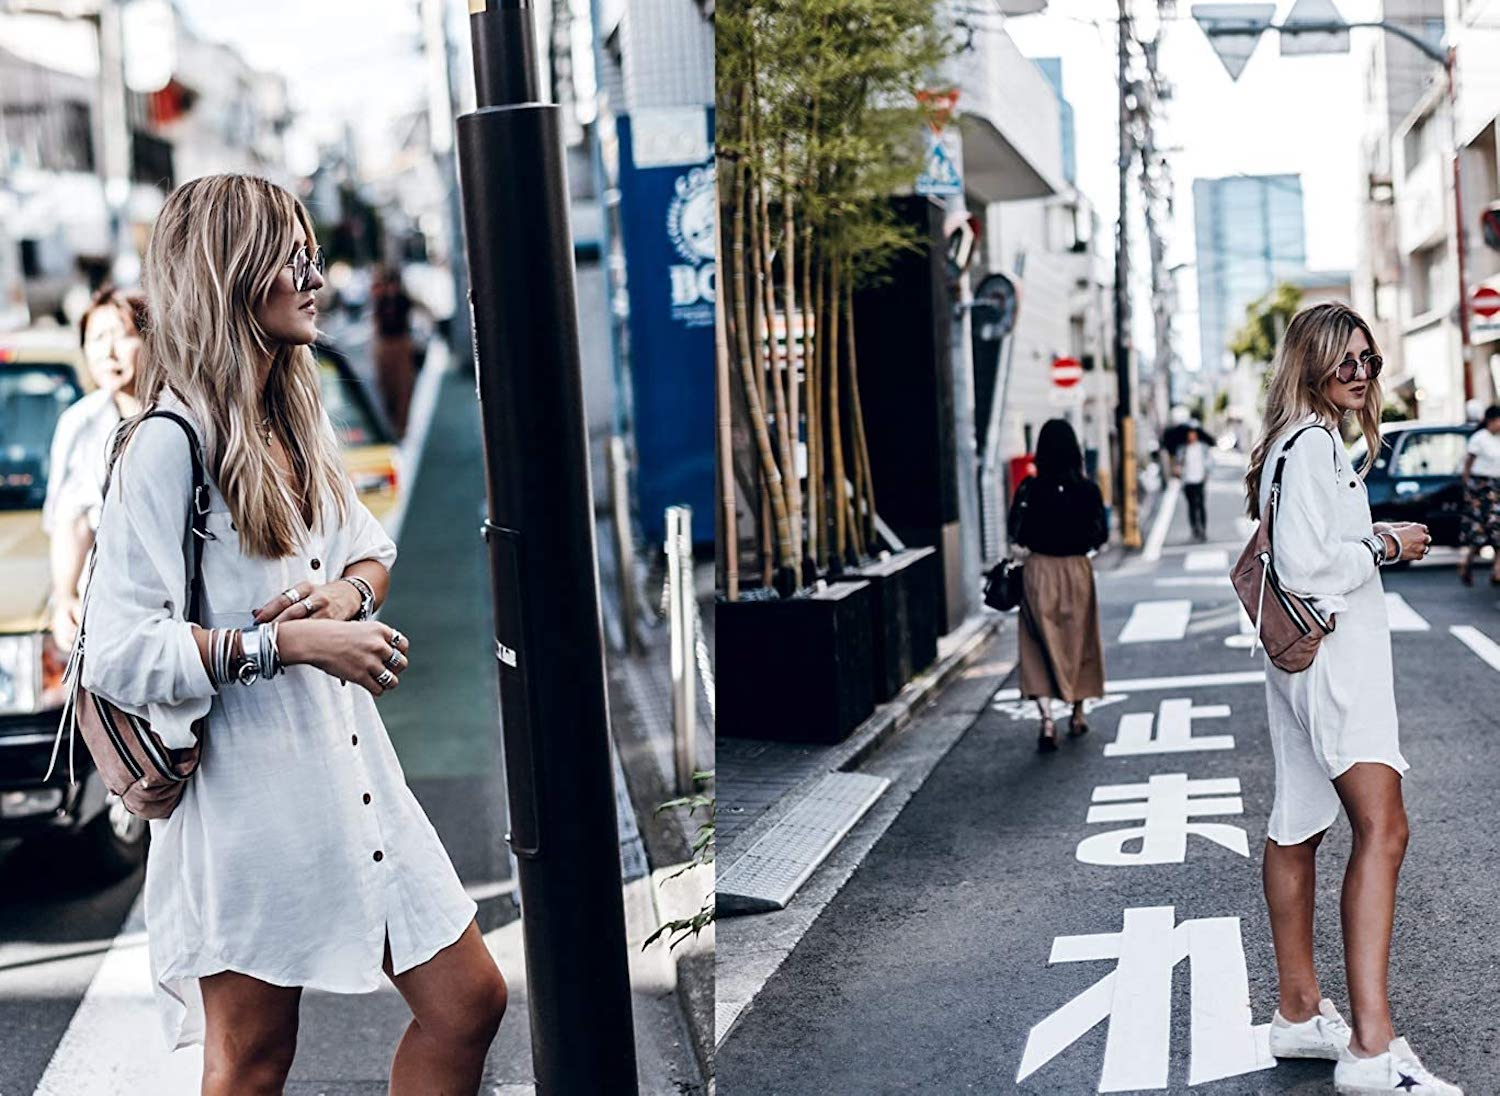 Two images of a woman in a white shirt-dress on the street